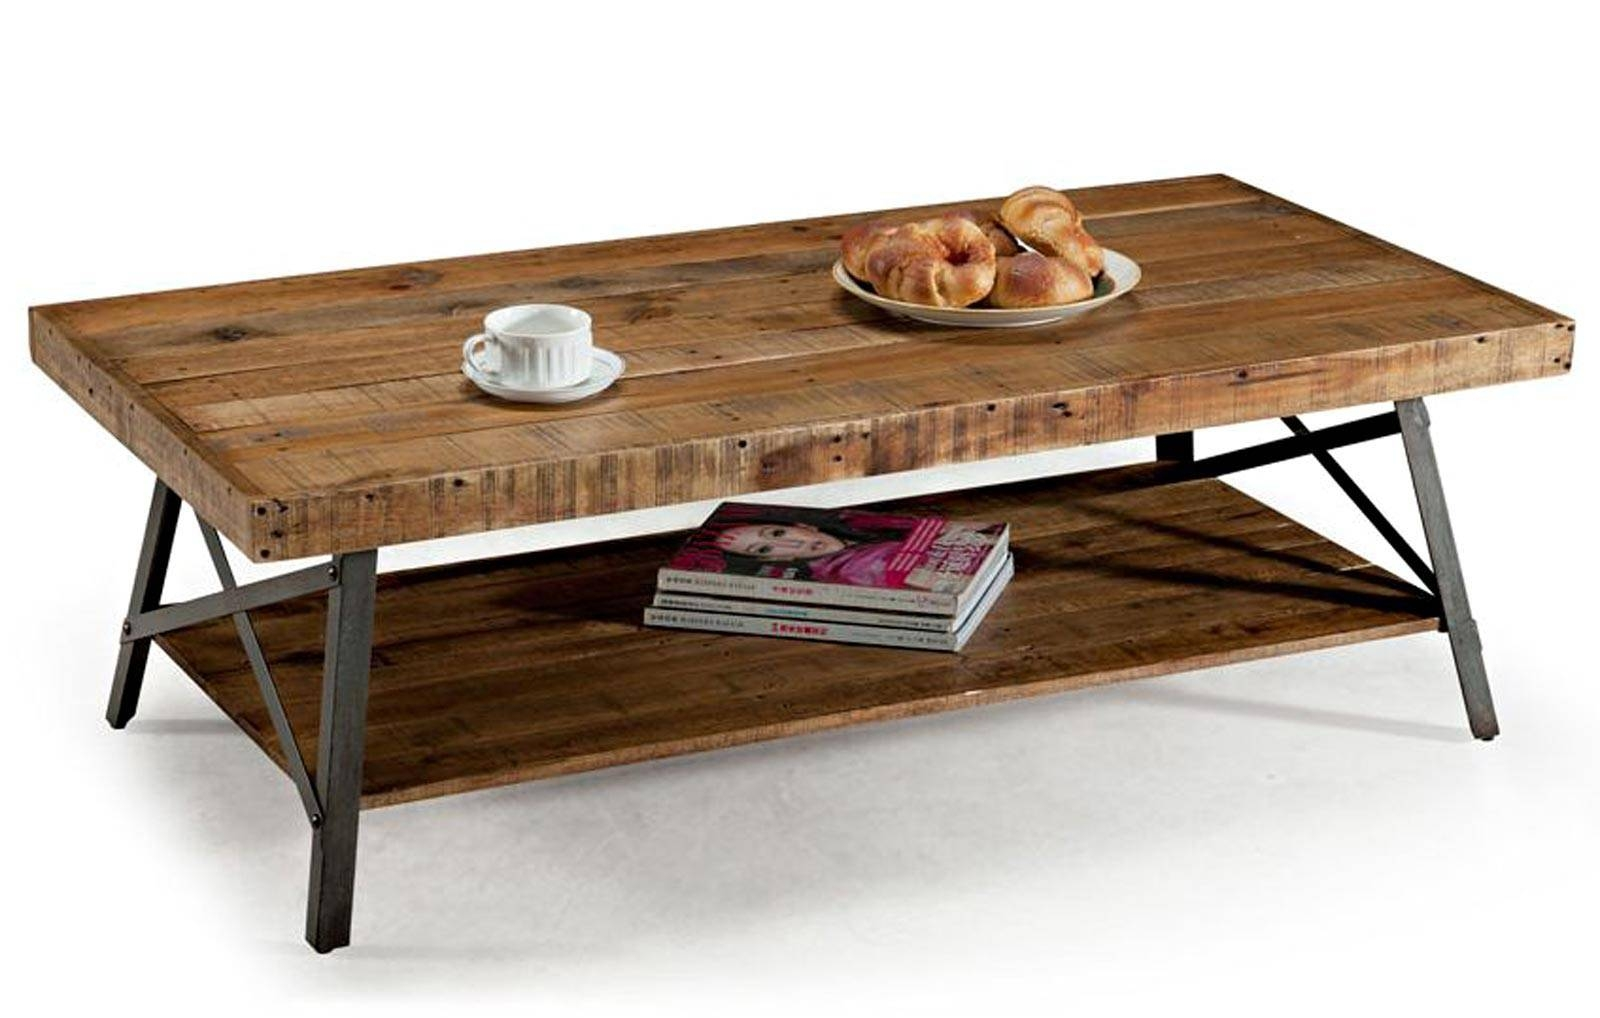 Steel And Wood Coffee Table | Coffe Table Galleryx within Steel and Wood Coffee Tables (Image 14 of 15)